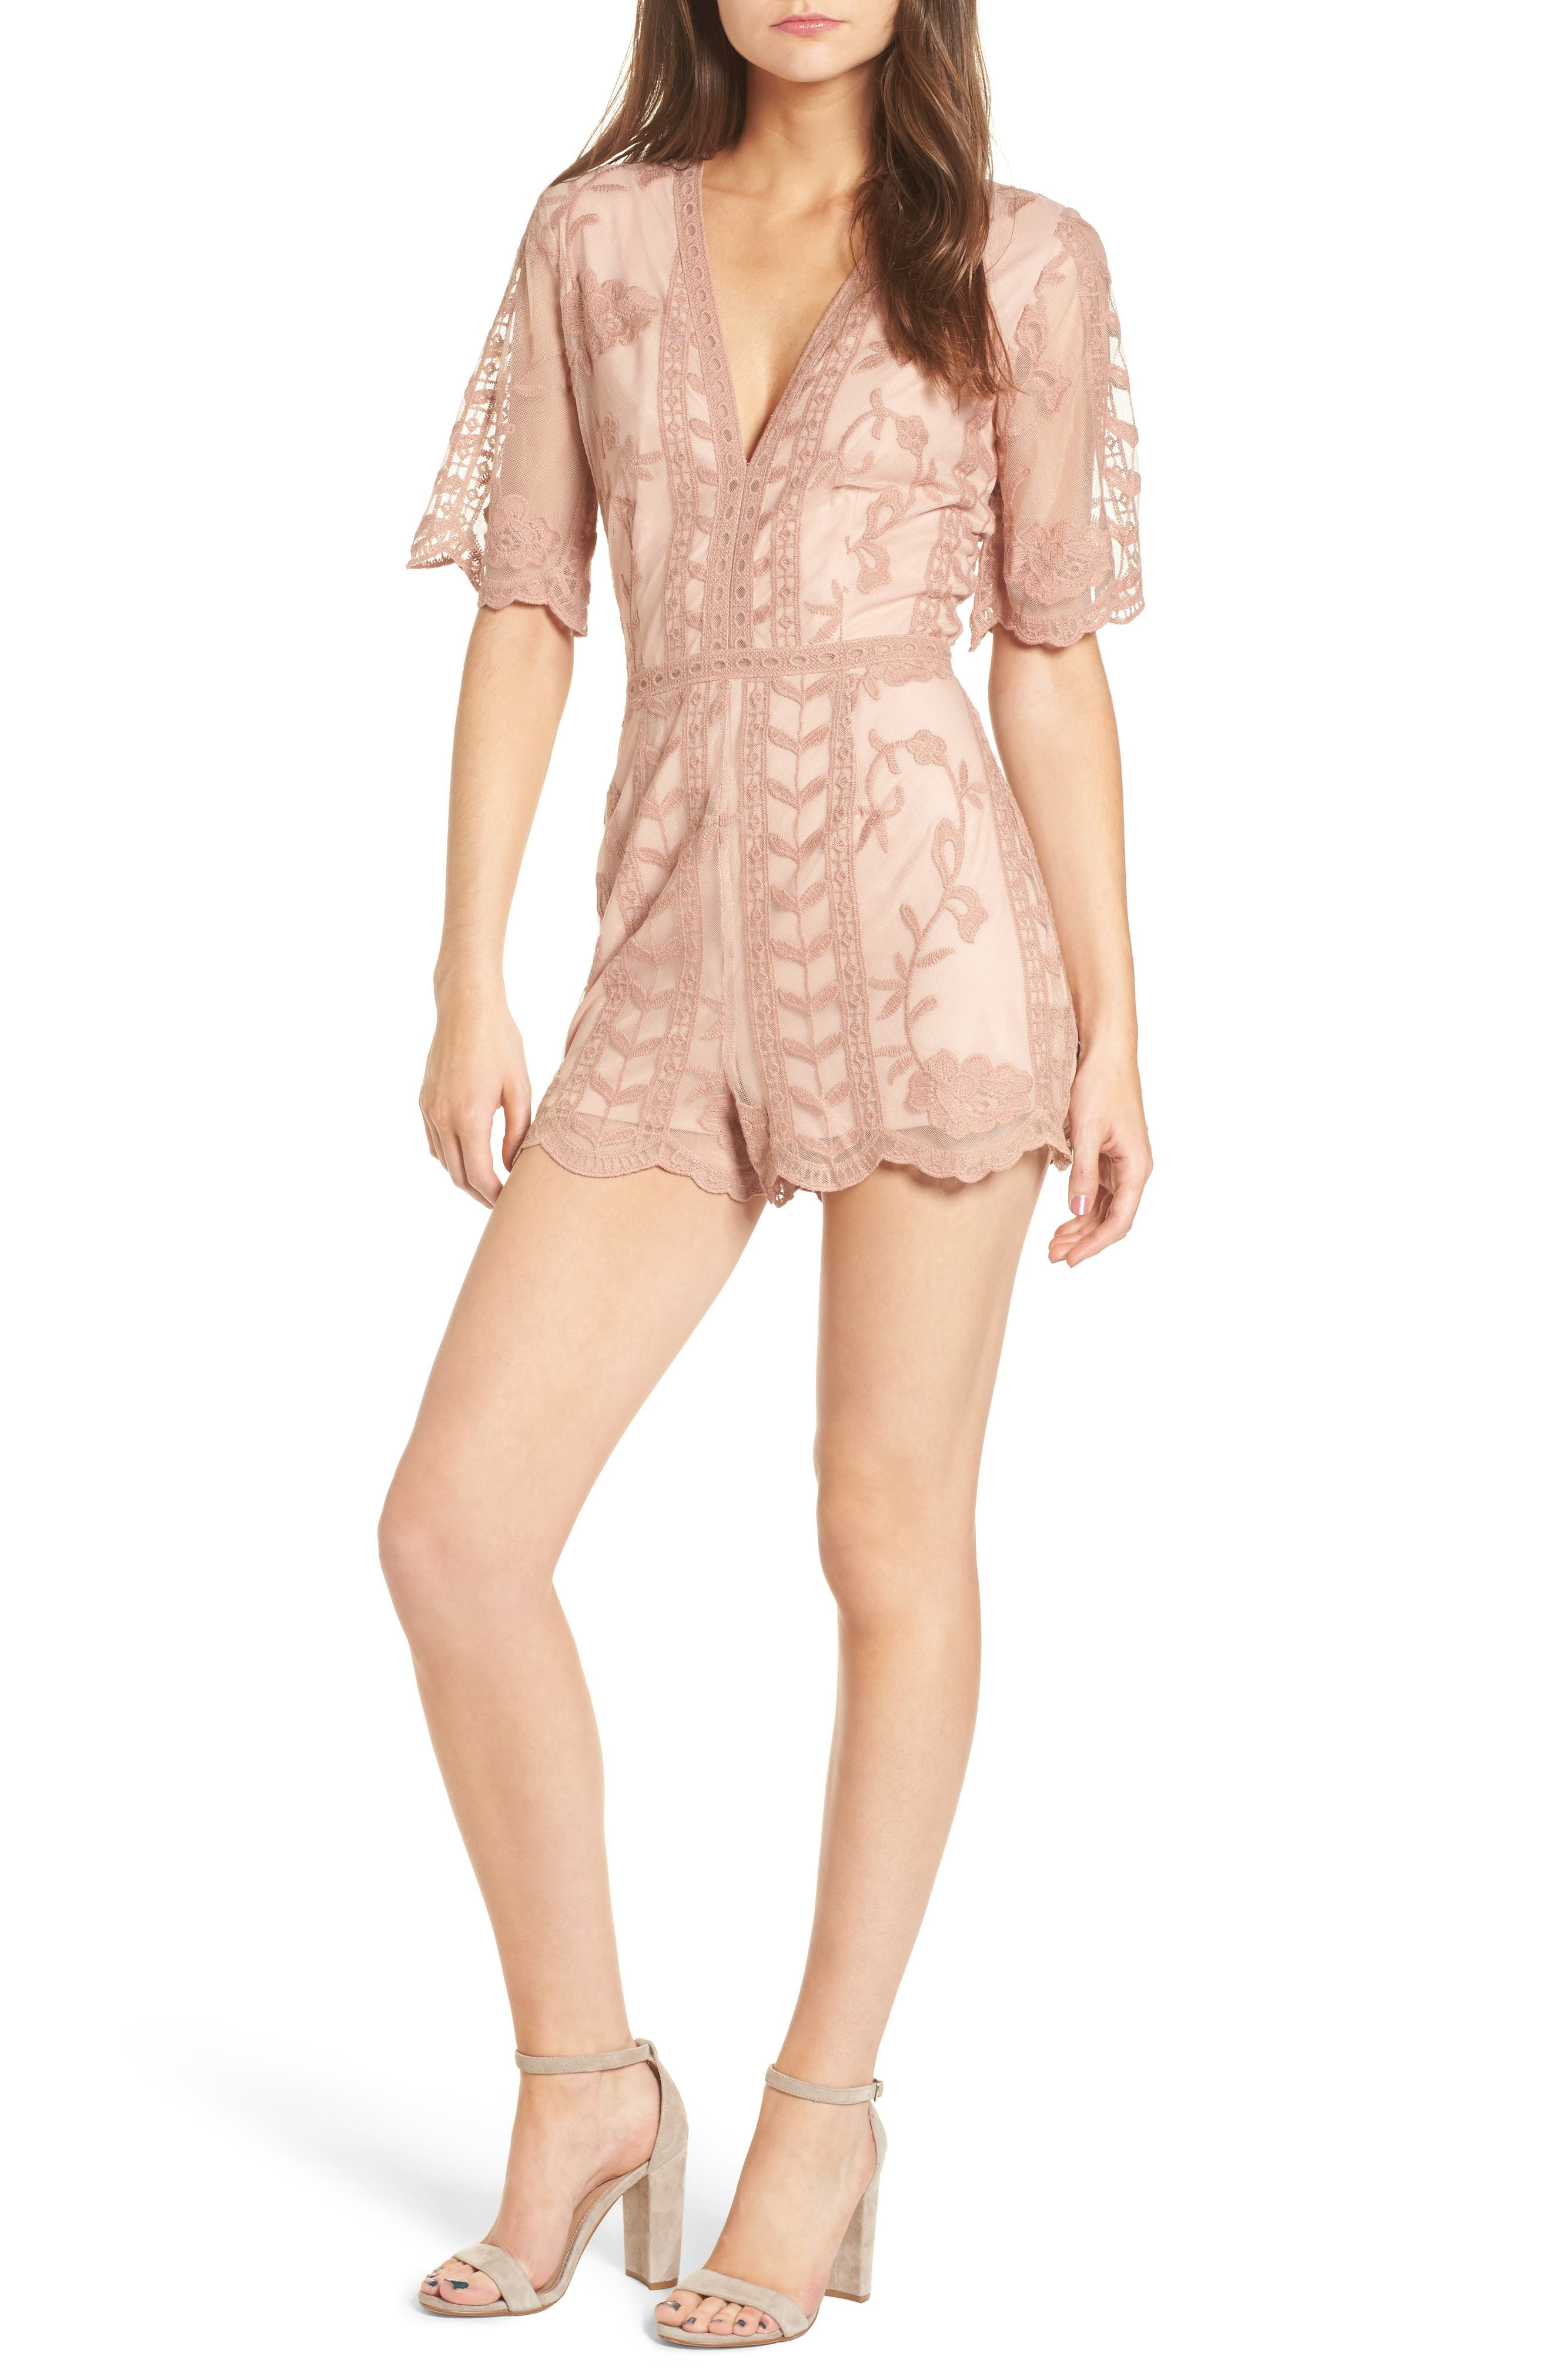 Image of Socialite Plunging Lace Romper